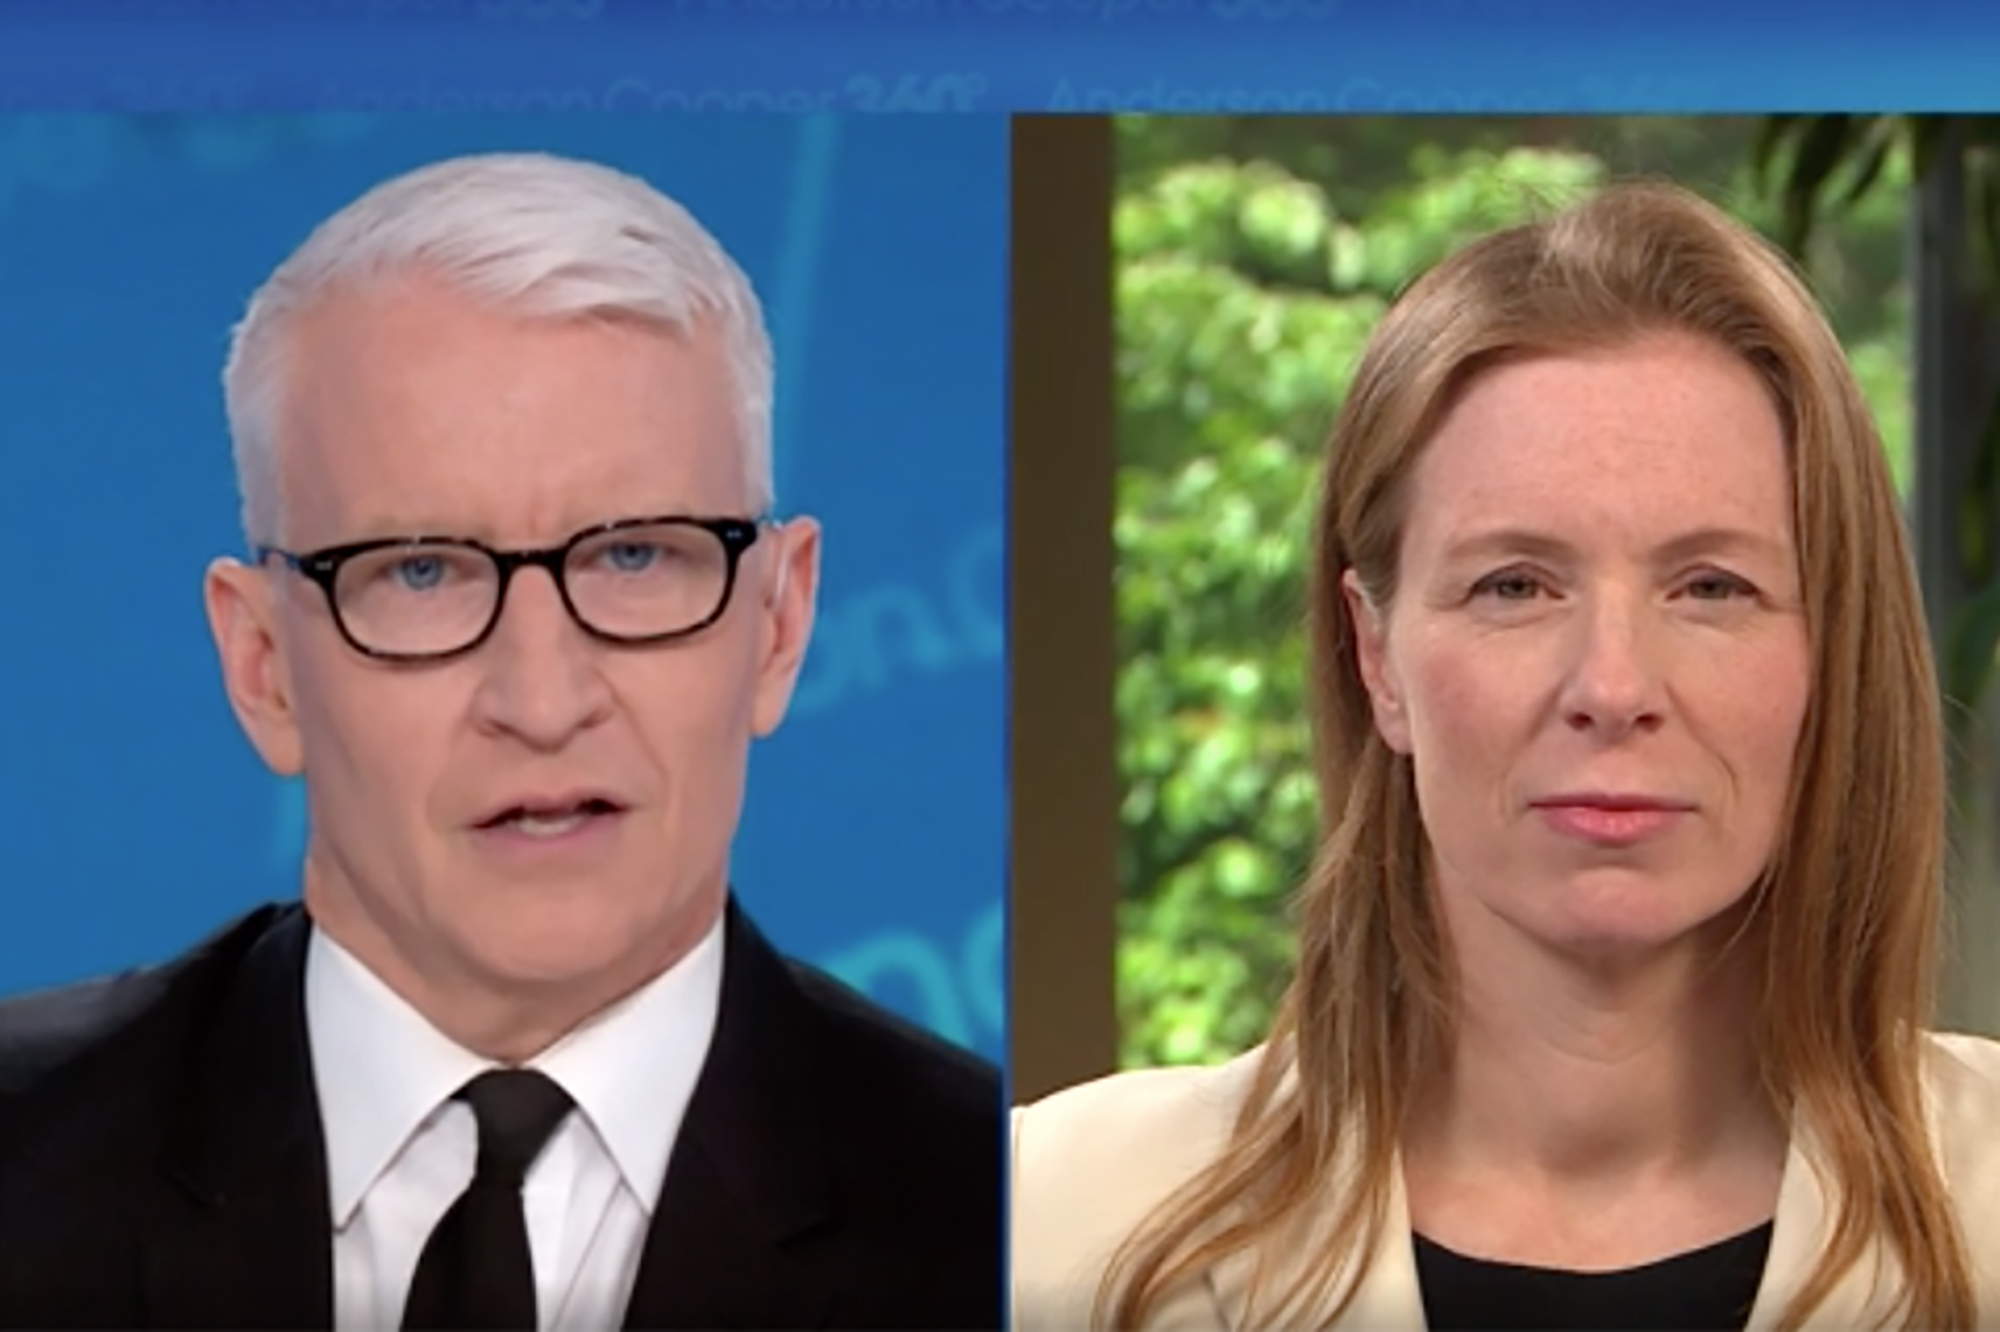 Anderson Cooper Dismantles Facebook Exec's Defense of Not Removing Fake Pelosi Video